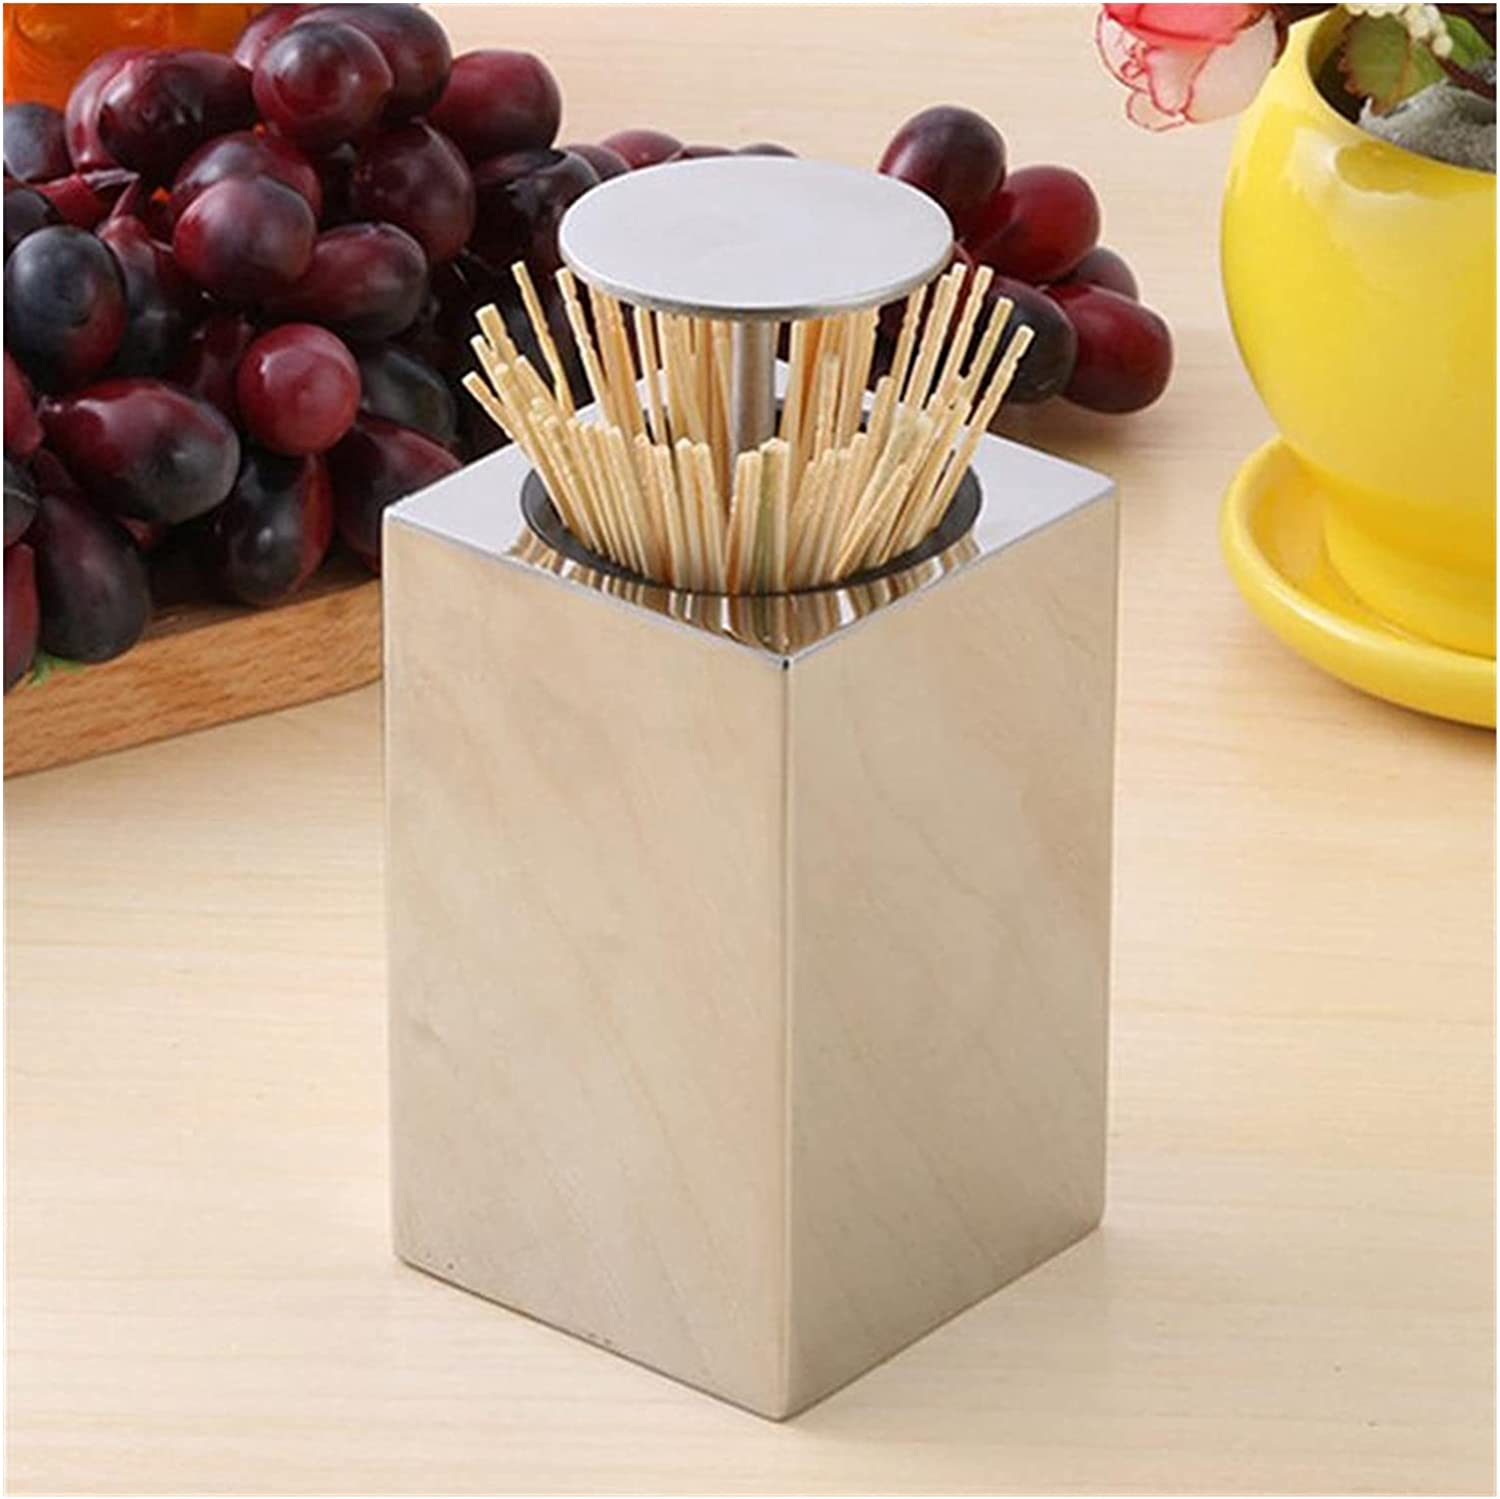 chenfeng Toothpick Dispenser Holder Steel Wholesale Max 69% OFF Stainless Ru